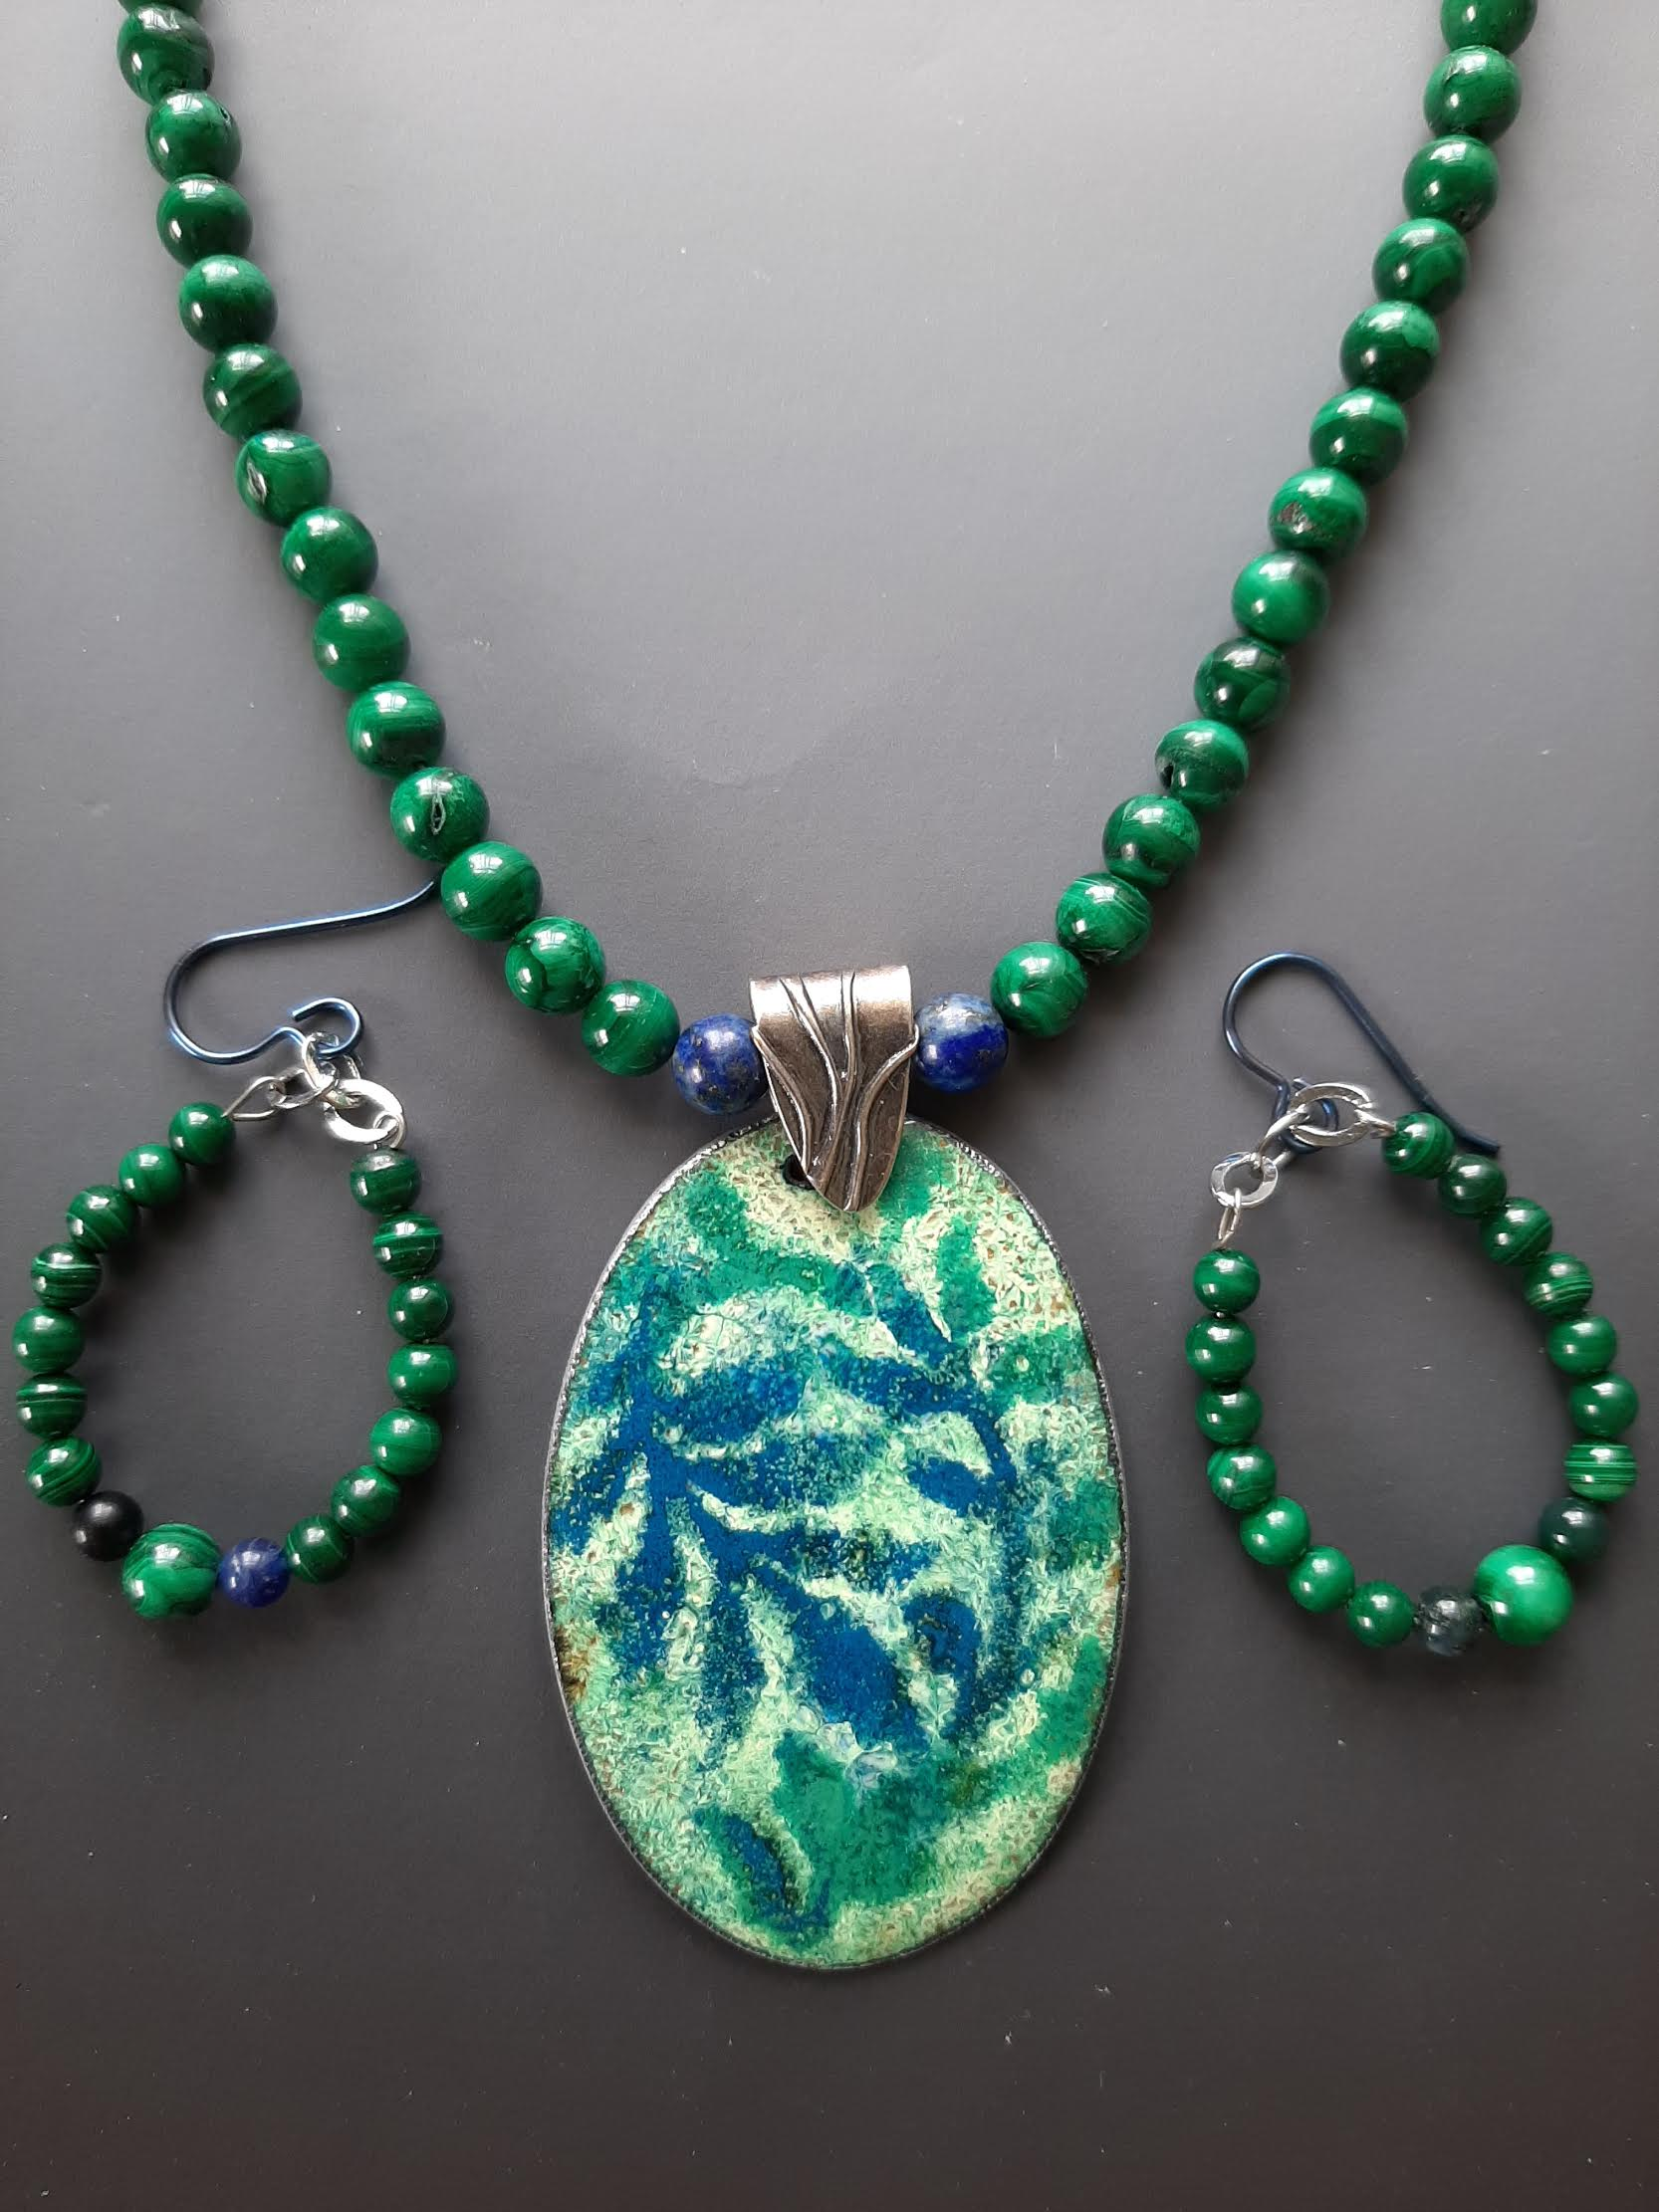 Oval Leaf Pattern Necklace and Earring Set with Malechite Beads, Silver Chain, 22